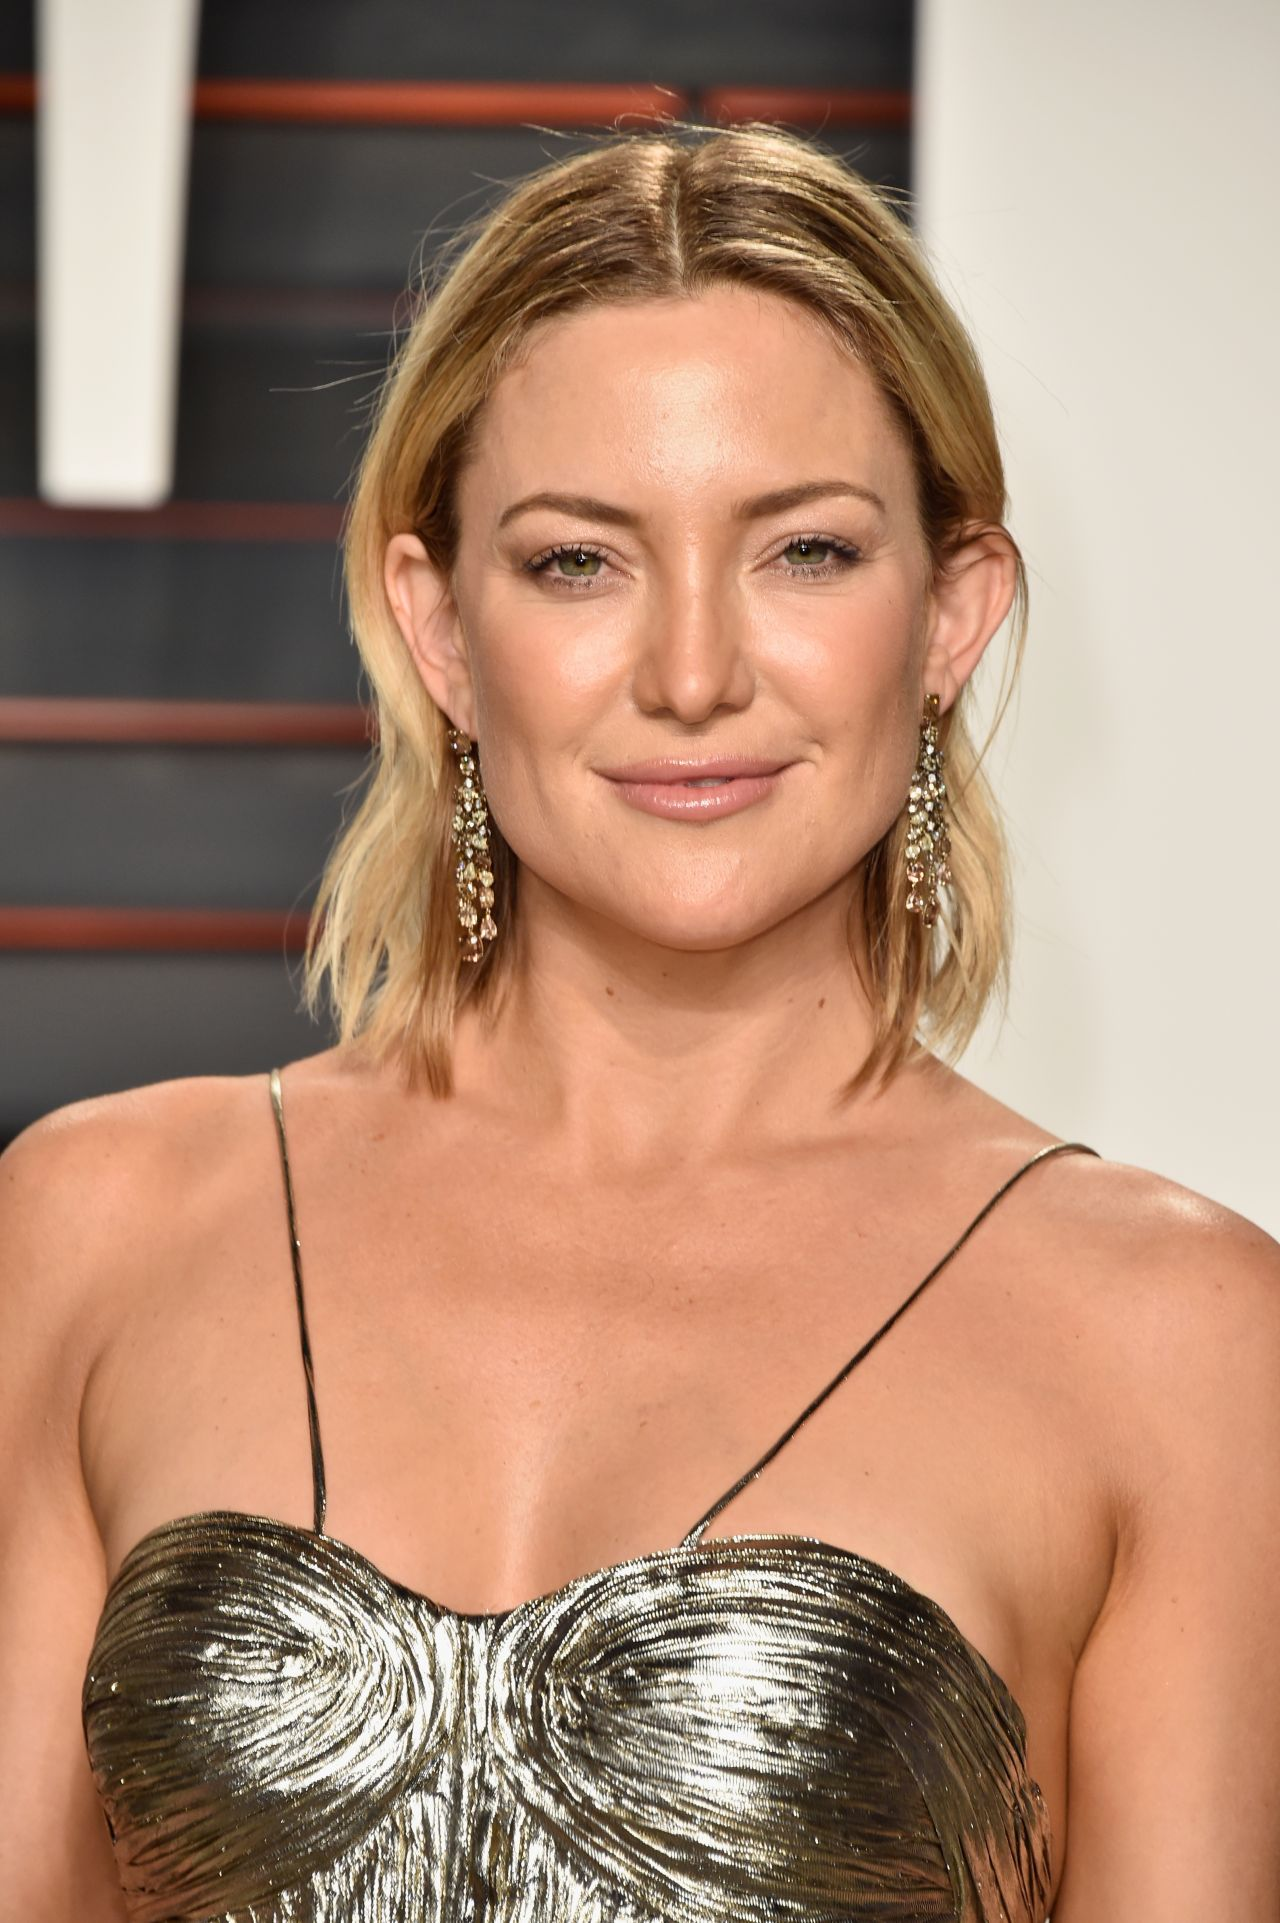 kate-hudson-vanity-fair-oscar-2016-party-in-beverly-hills-ca-2